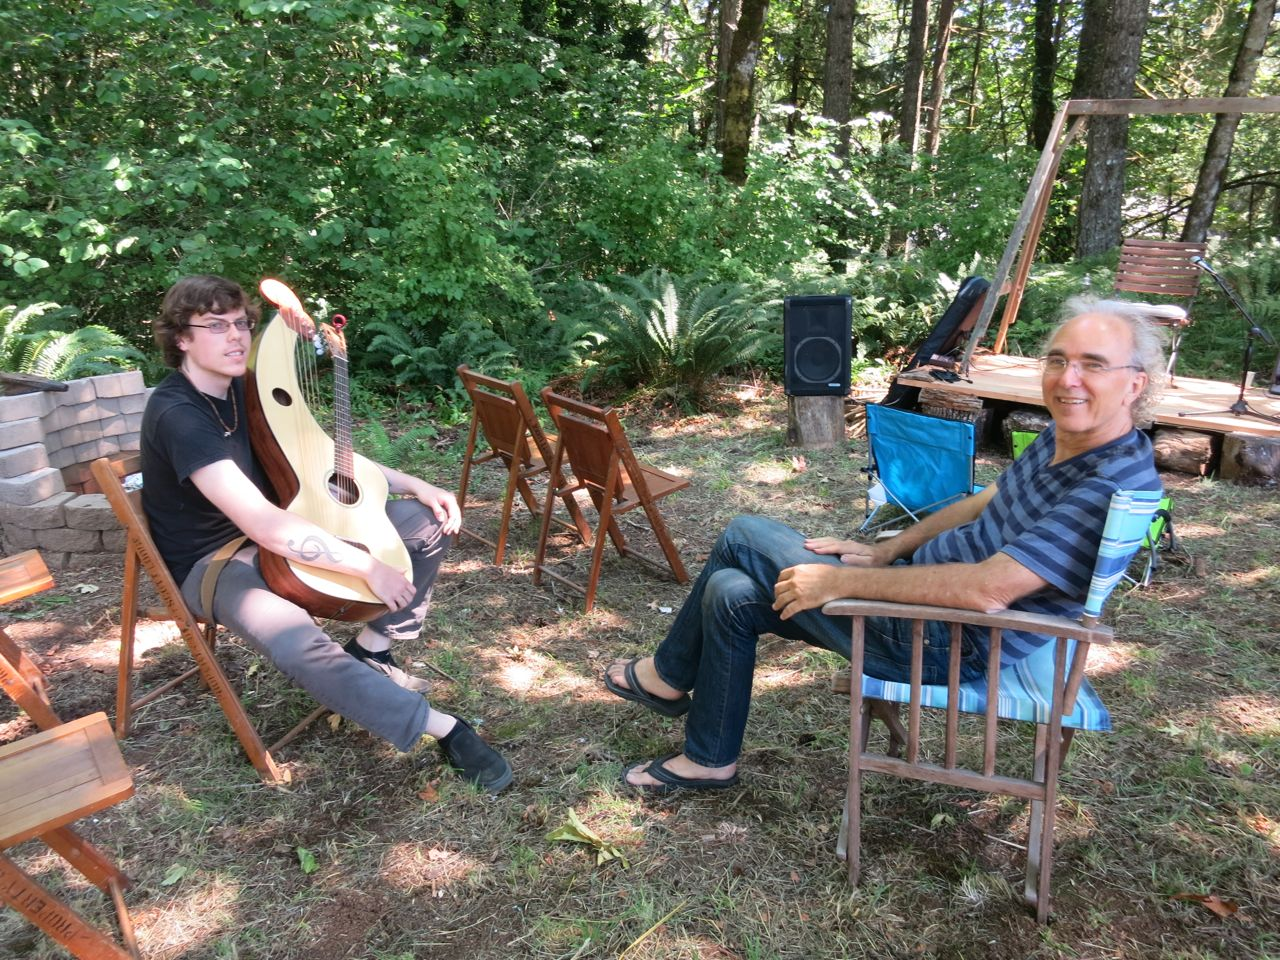 John gives a private lesson to Adrian in the woods with the harp guitar.